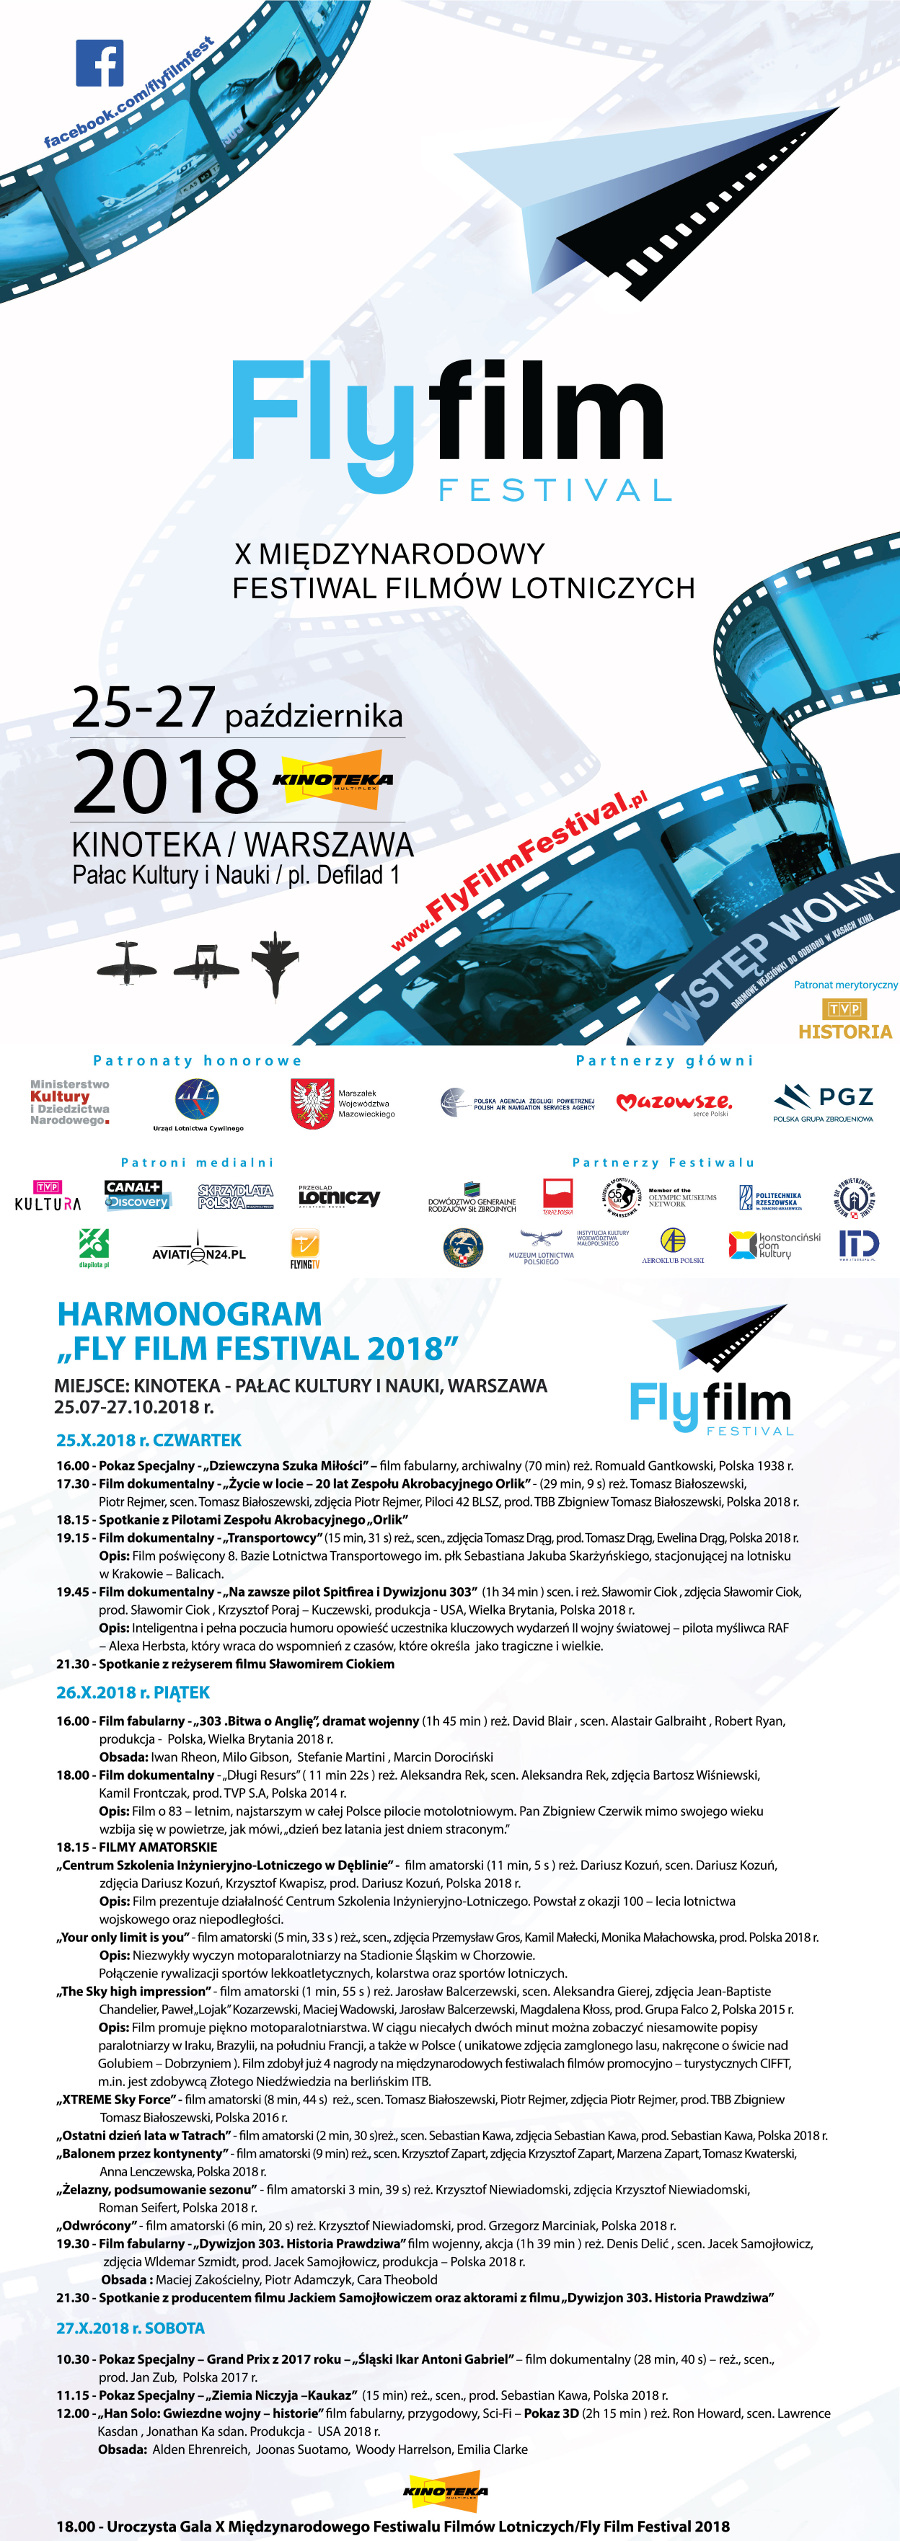 harmonogram fly film festiwal